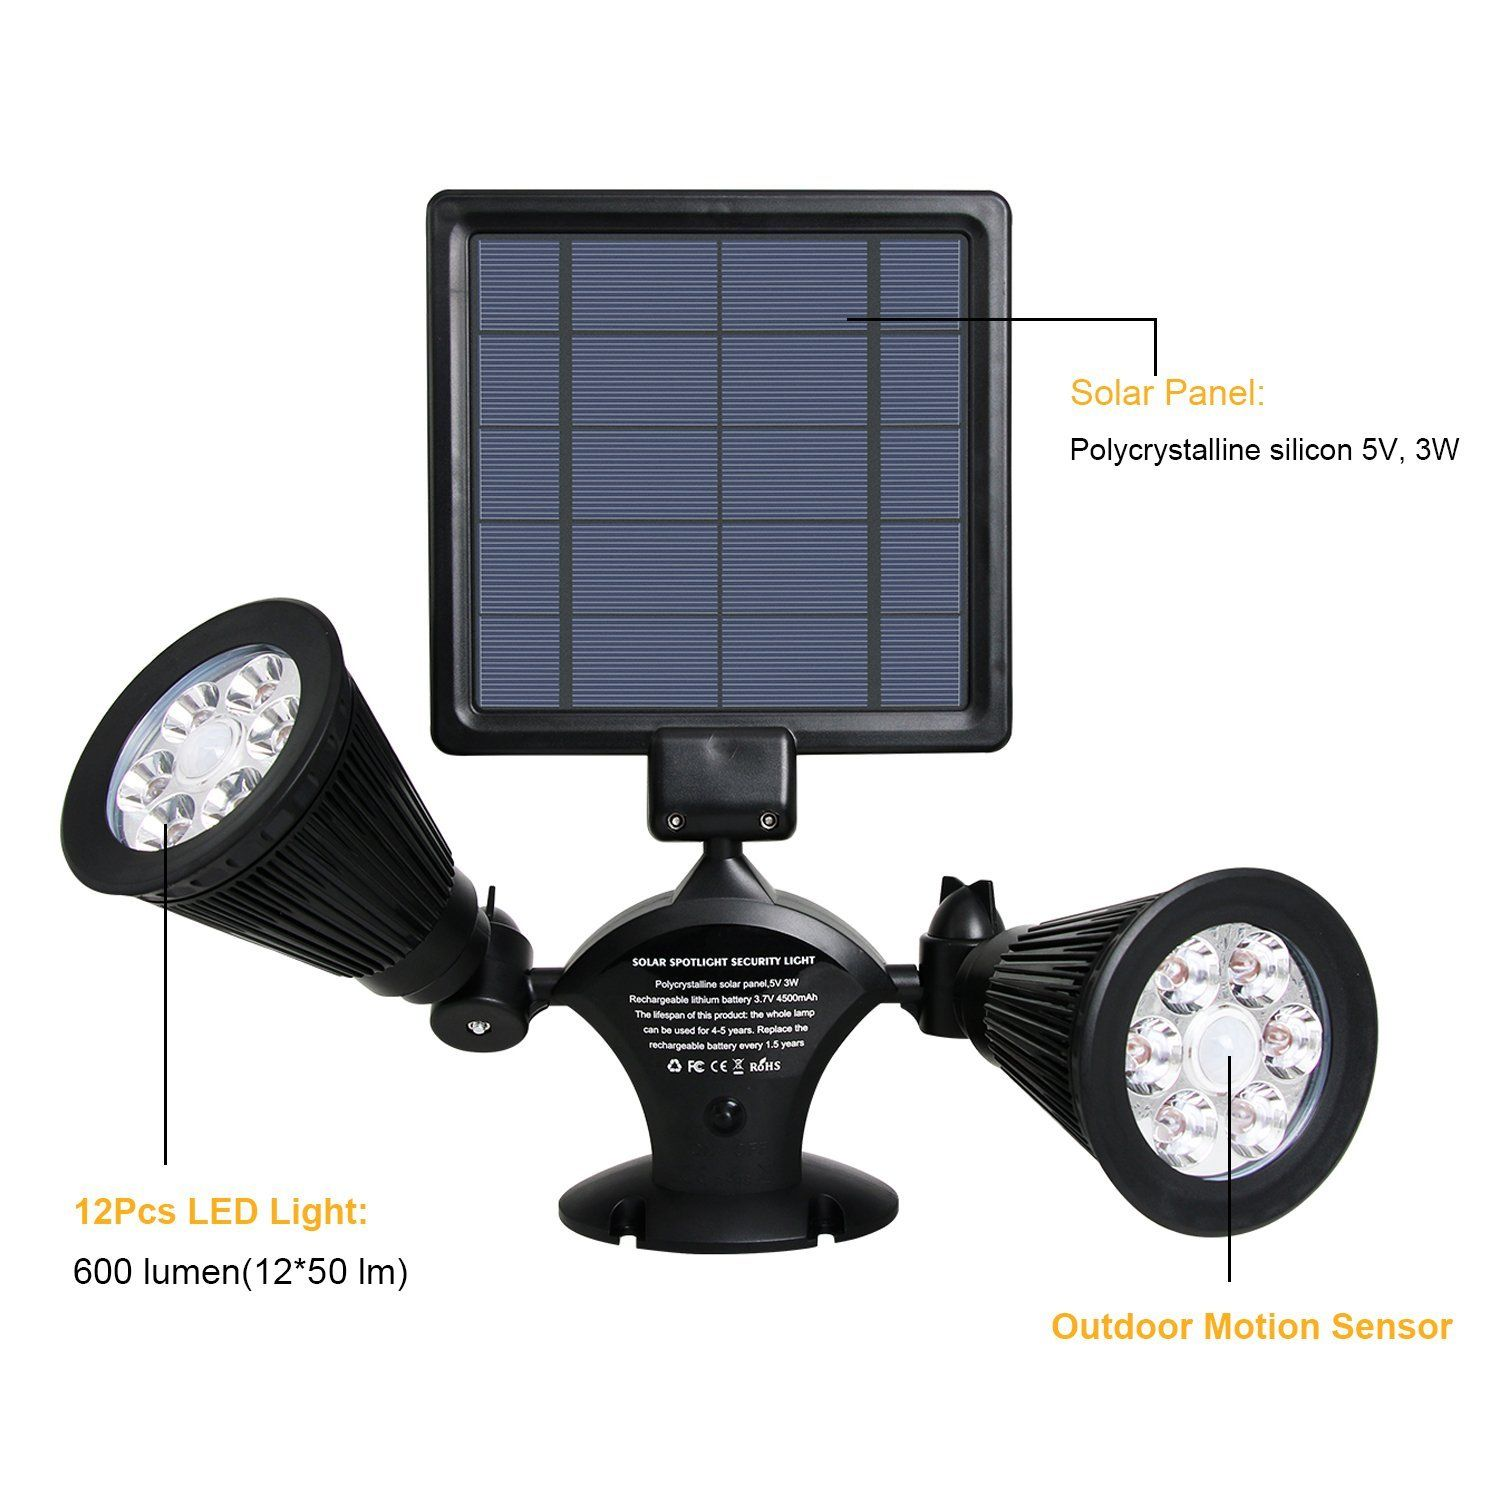 The Solar Panel Has Some Angle Adjustment But Could Be More I M